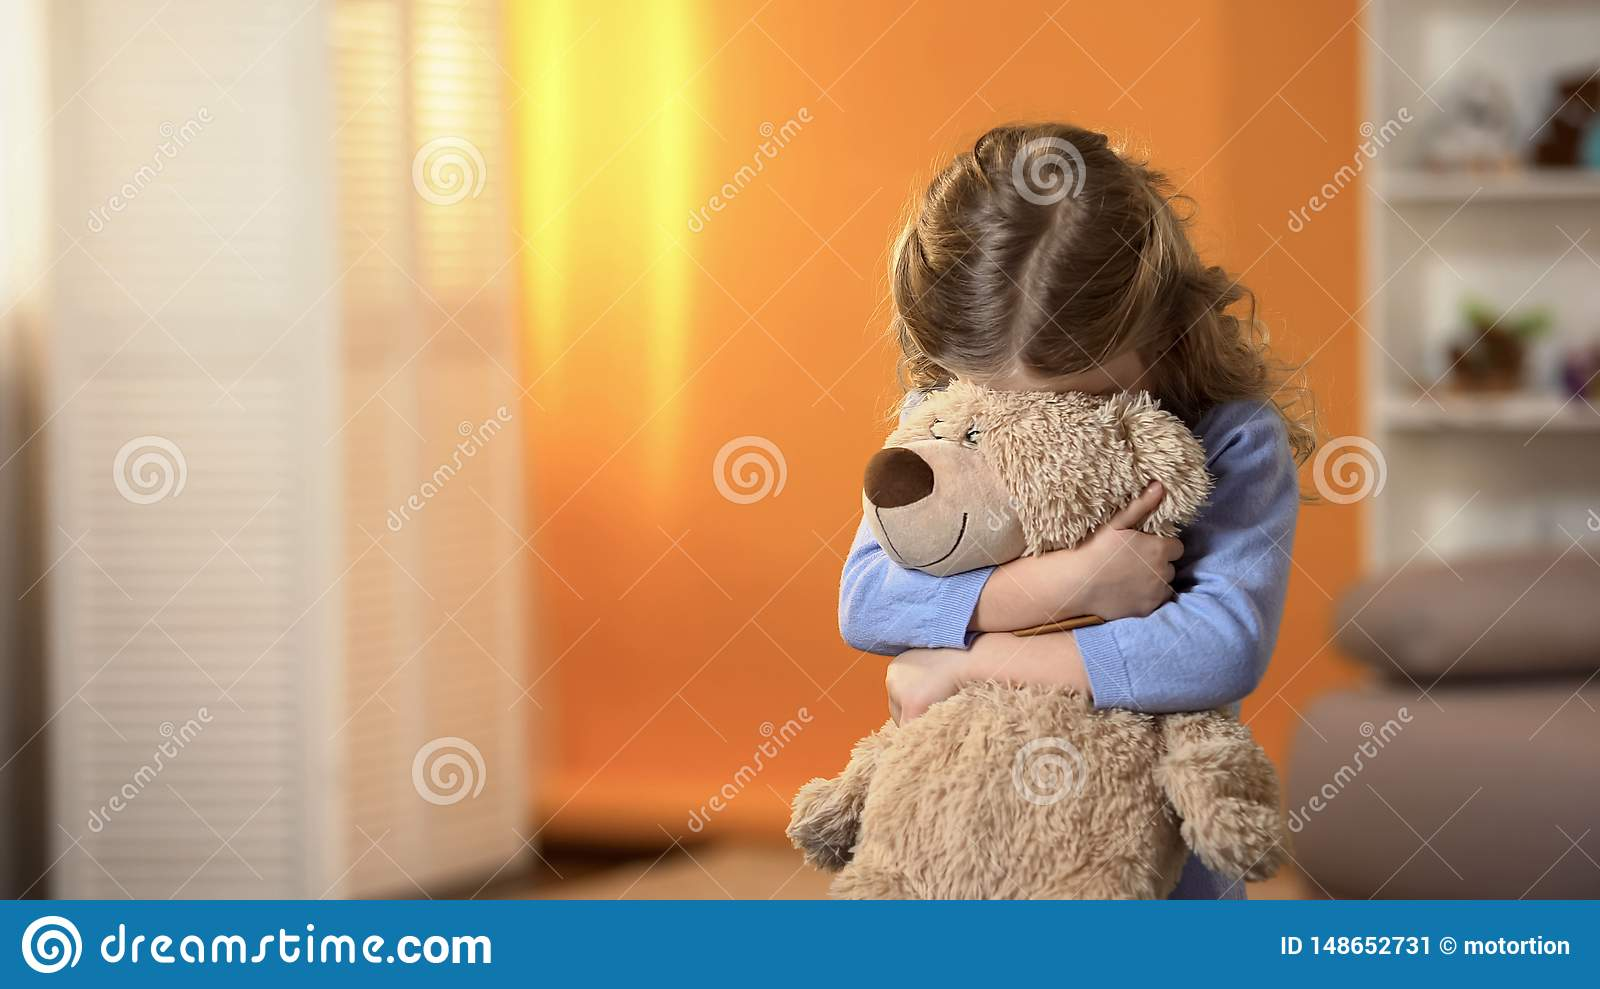 Shy curly girl hiding face behind favorite teddy bear, childhood psychology